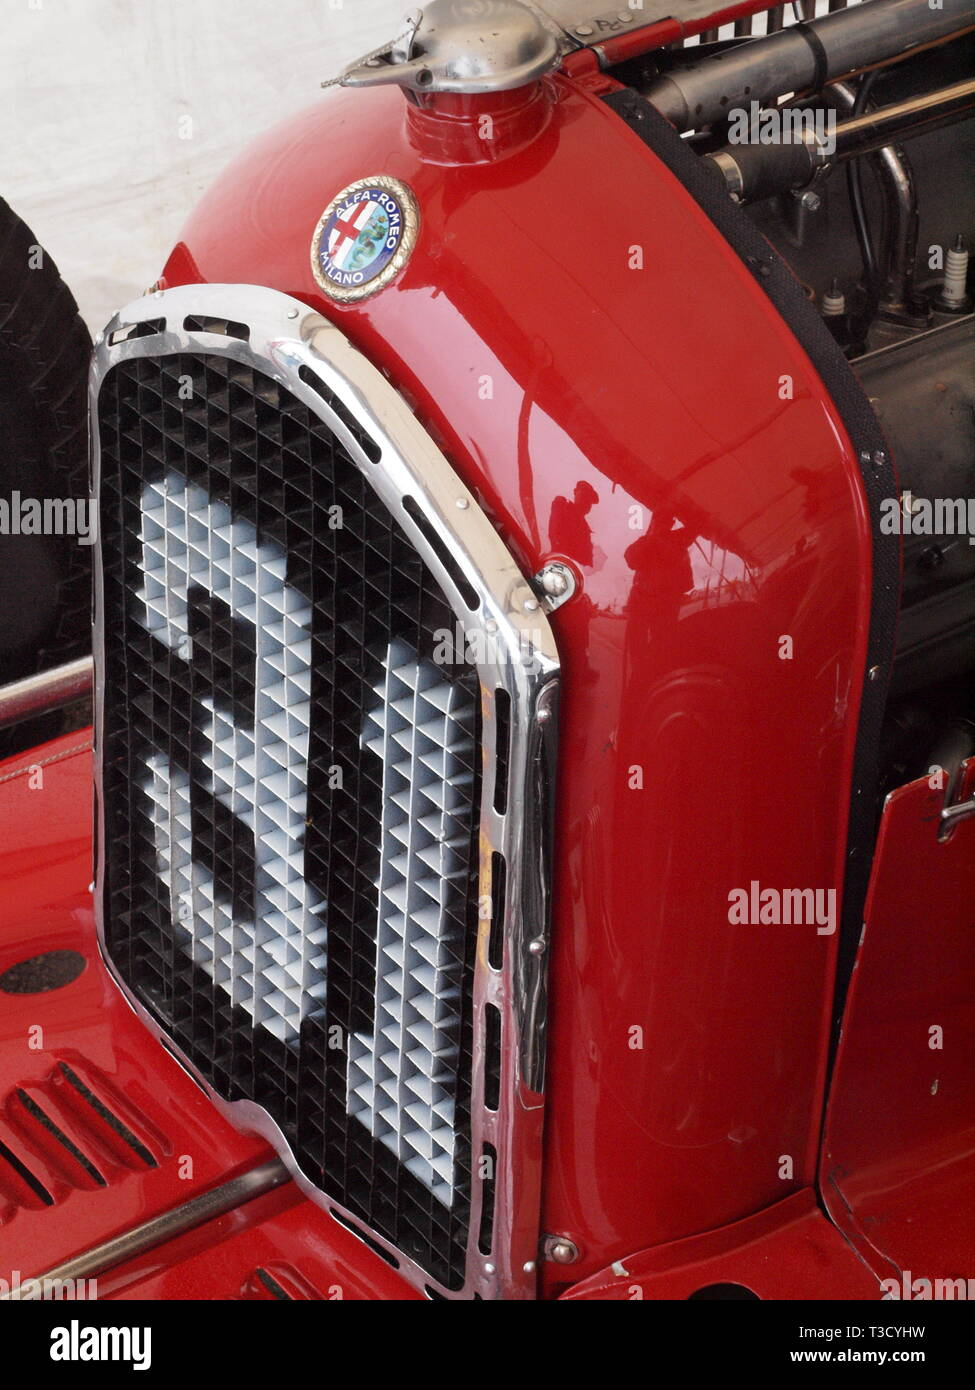 Late 1930's Alfa Romeo race car grill emblazoned with a white number 31 on the front. The race was part of the vintage races held in Watkins Glen, NY - Stock Image